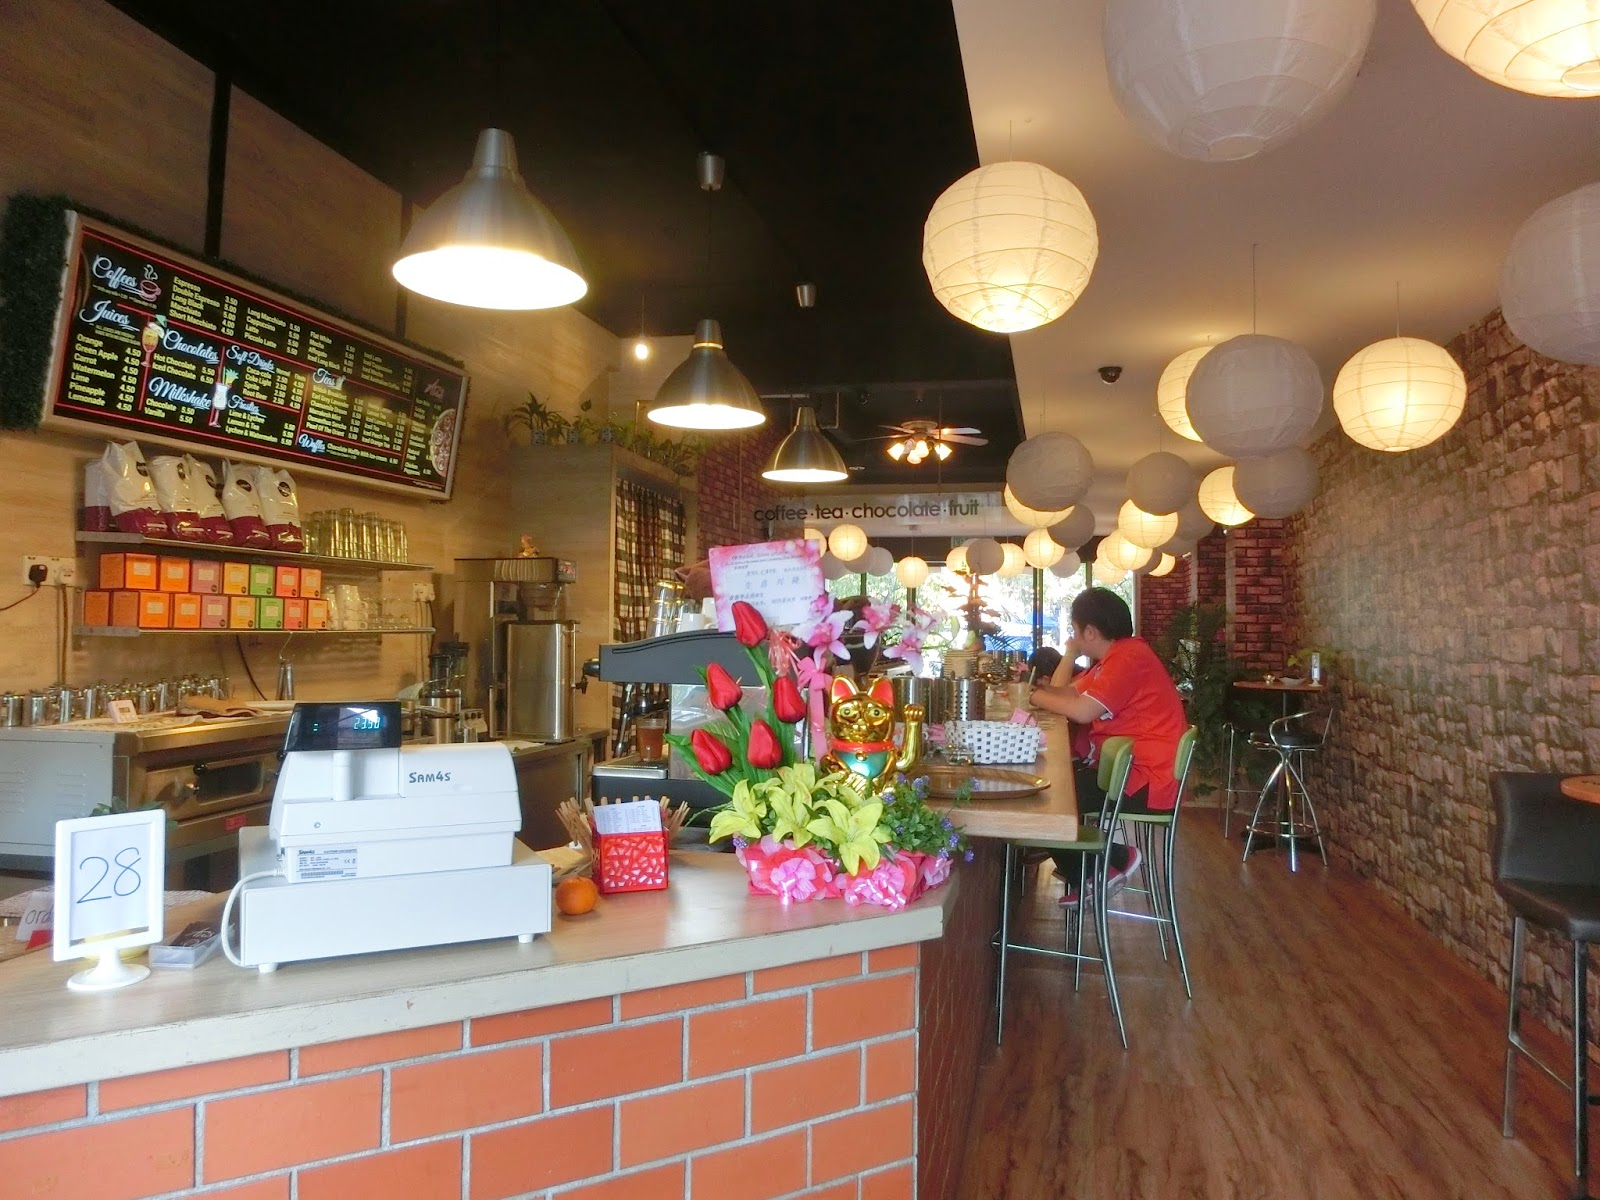 Ans coffee kampar new town closed feliciaace previously this cafe is a bubble tea shop and at that time it was a trend and there were like more than 5 bubble tea shops in kampar itself junglespirit Images